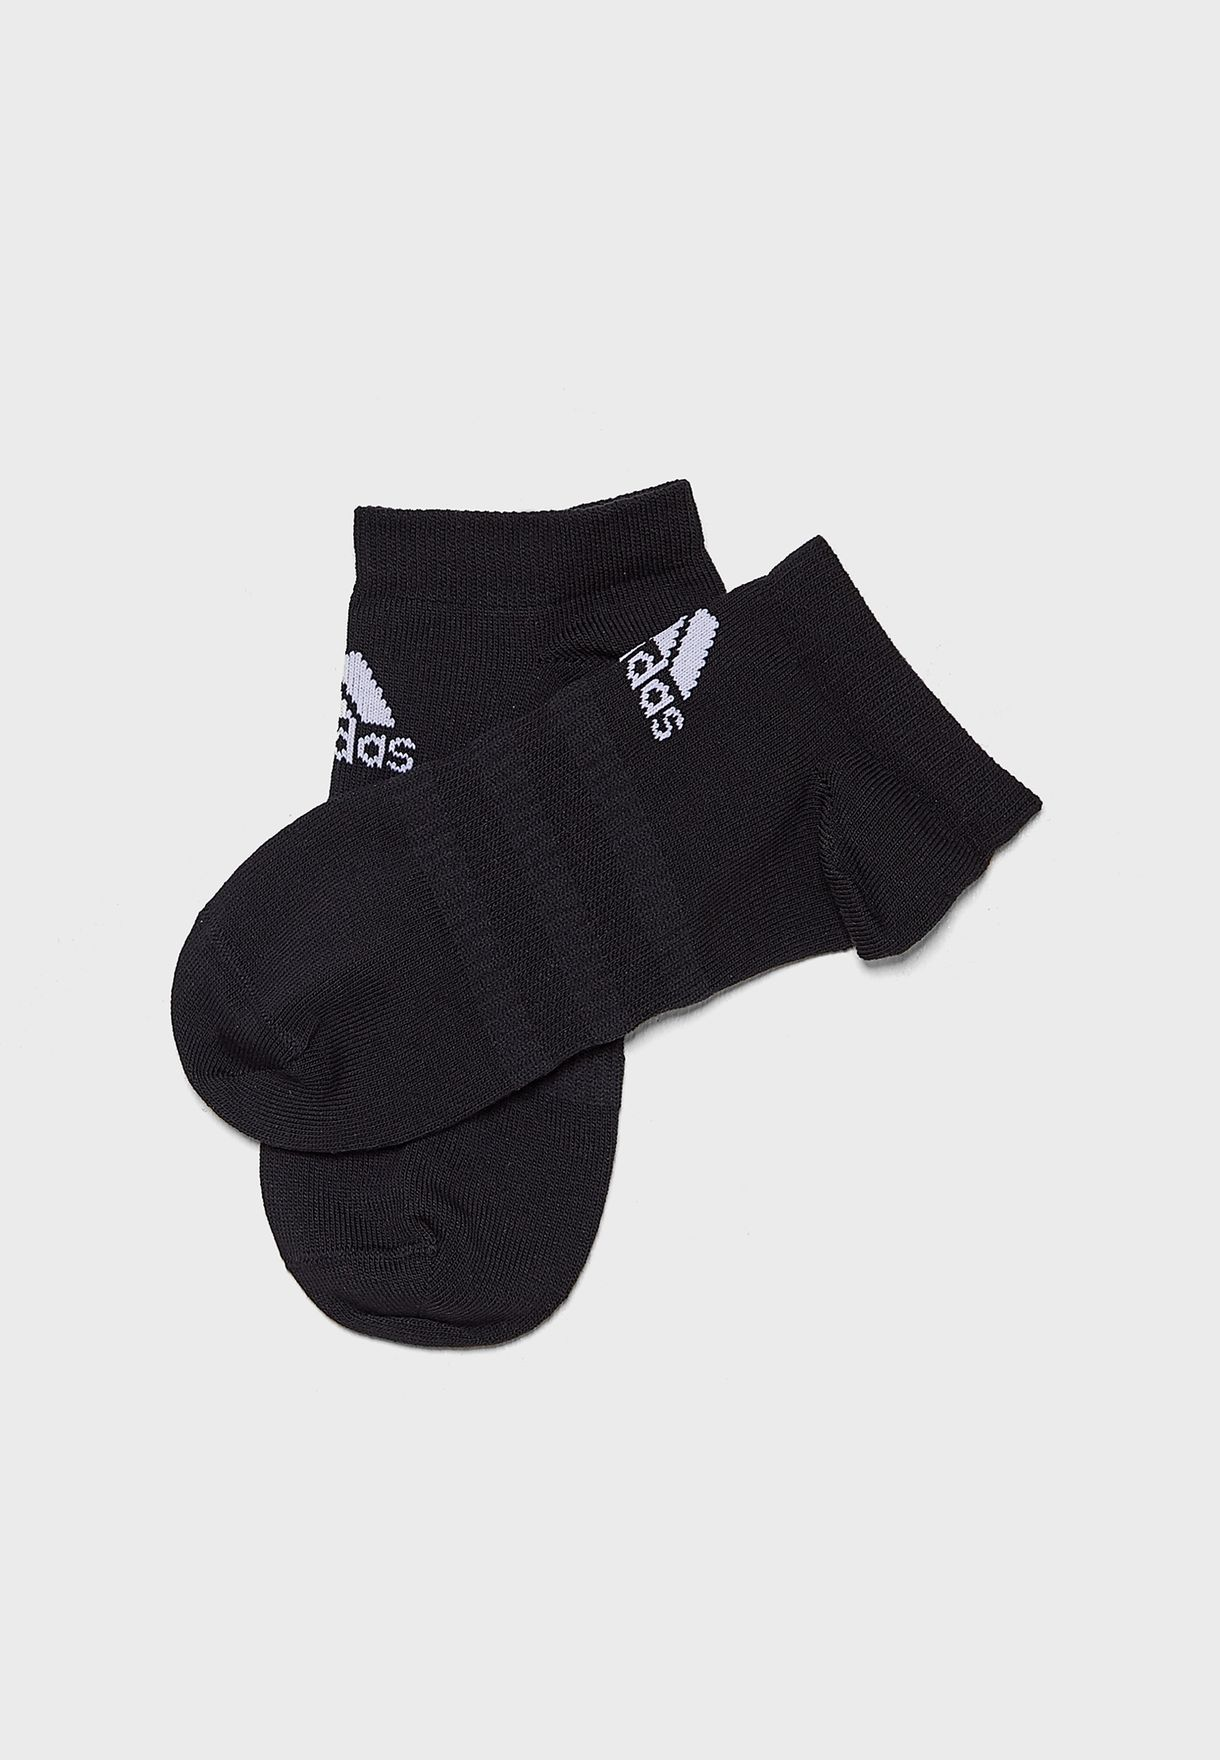 Light Essentials Sports Training UnisexNo Show Socks